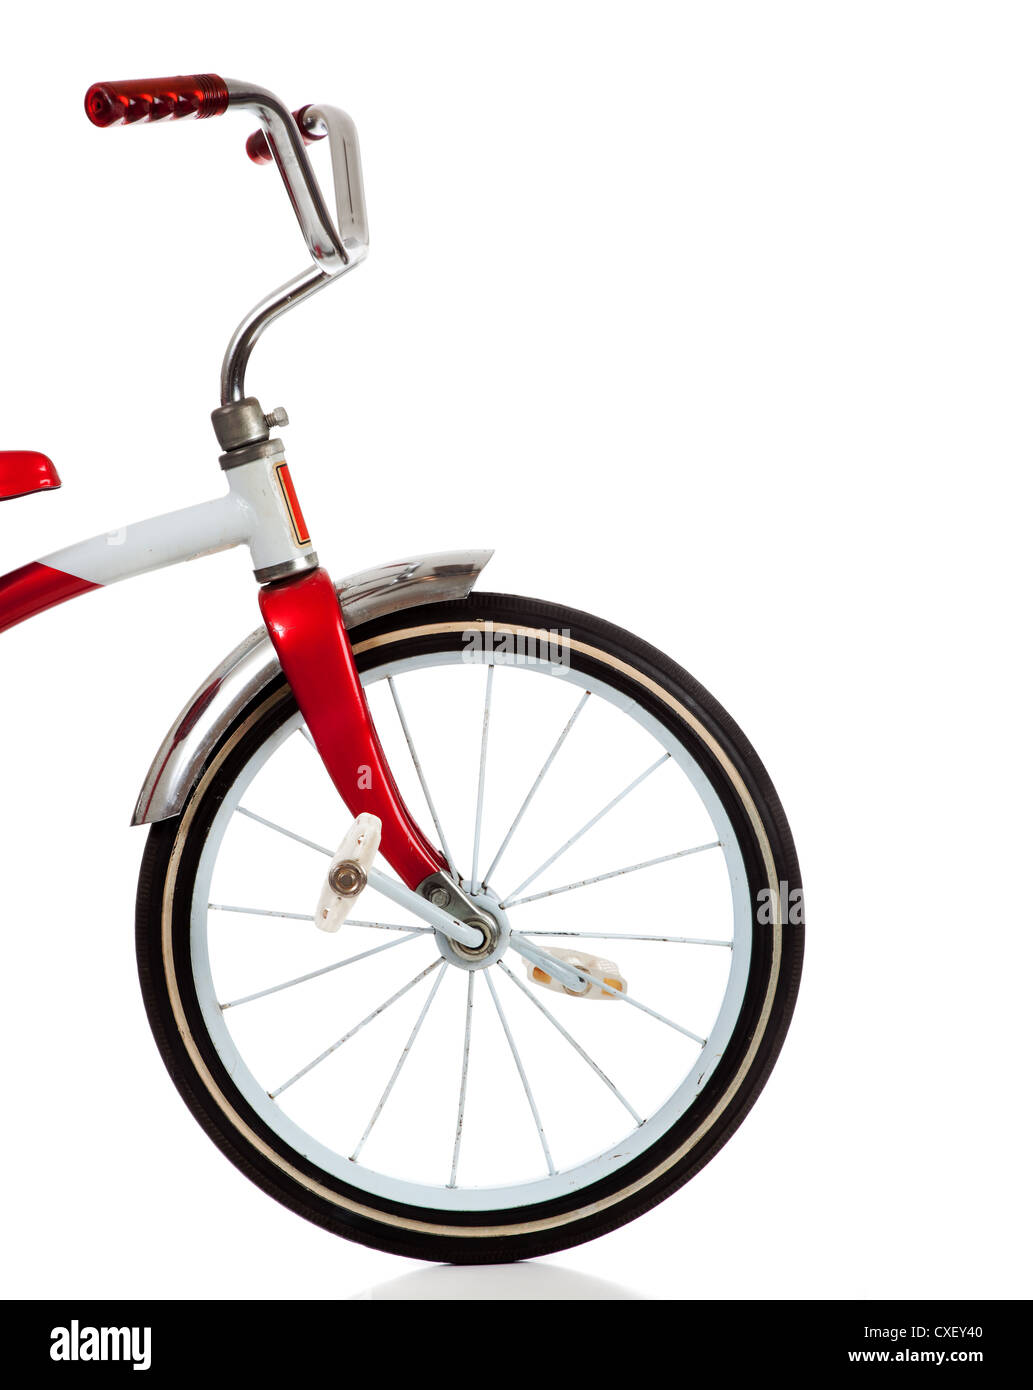 Front wheel of a red tricycle on a white background - Stock Image